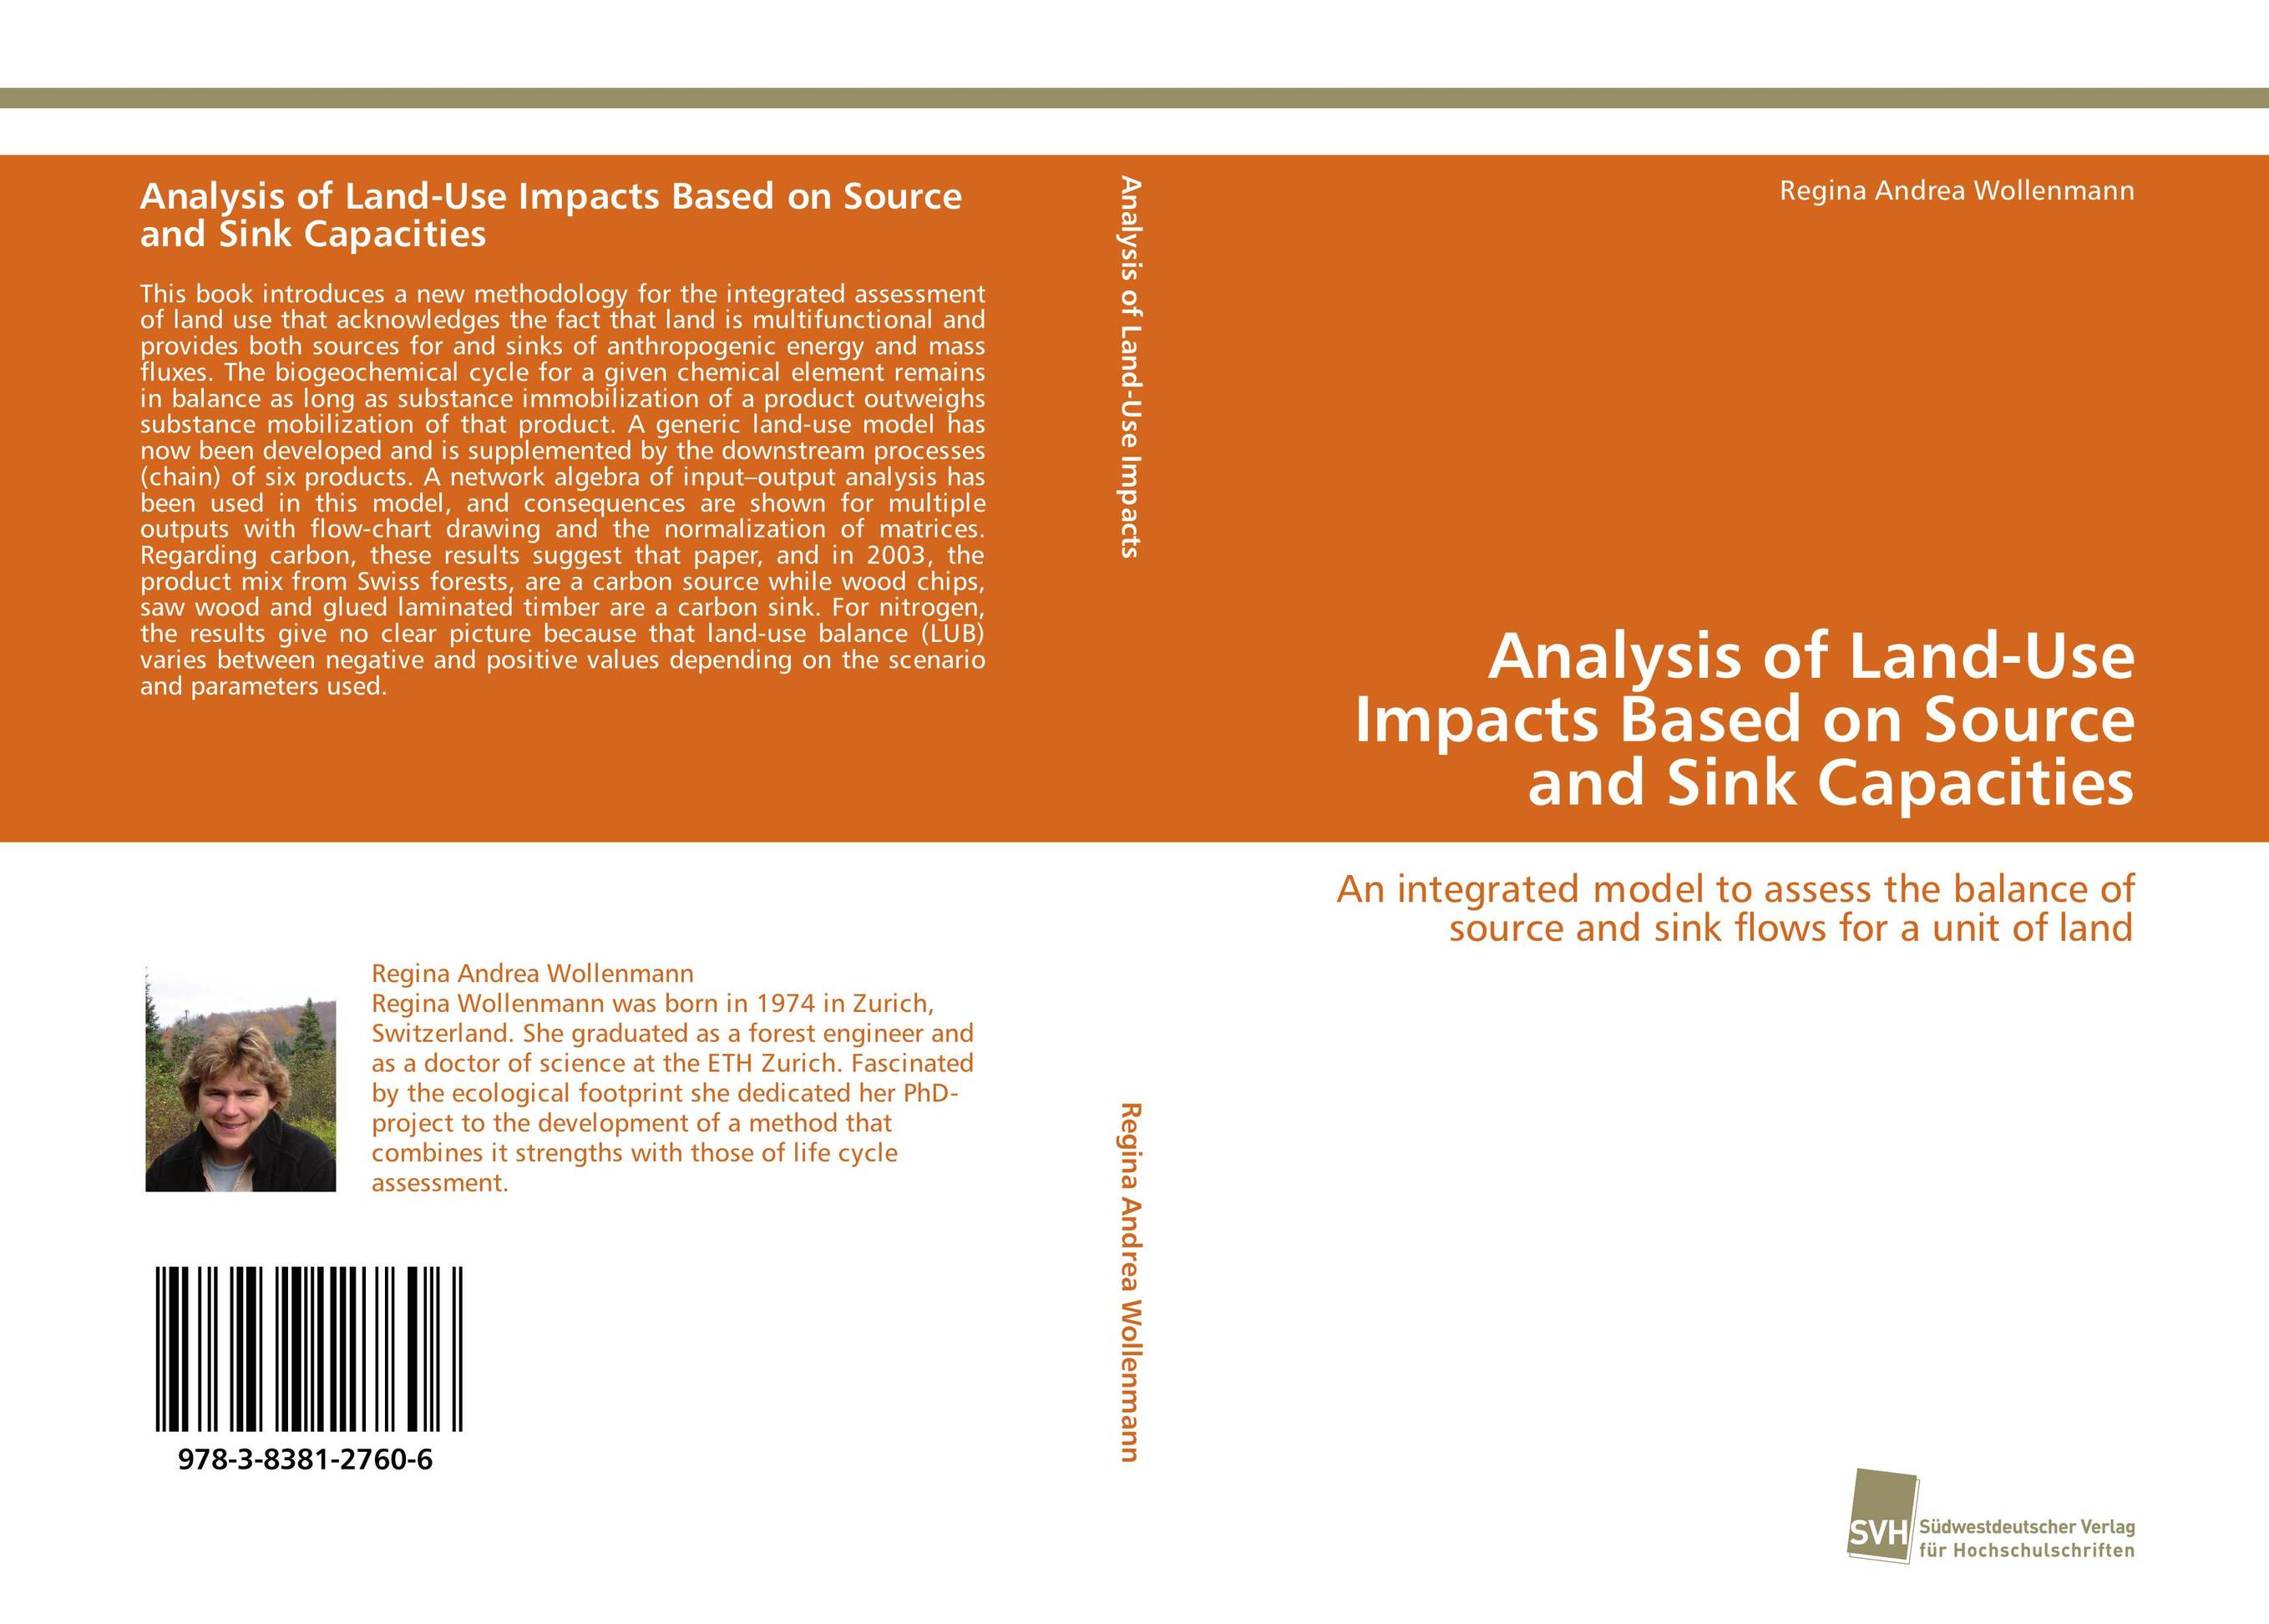 Analysis of Land-Use Impacts Based on Source and Sink Capacities